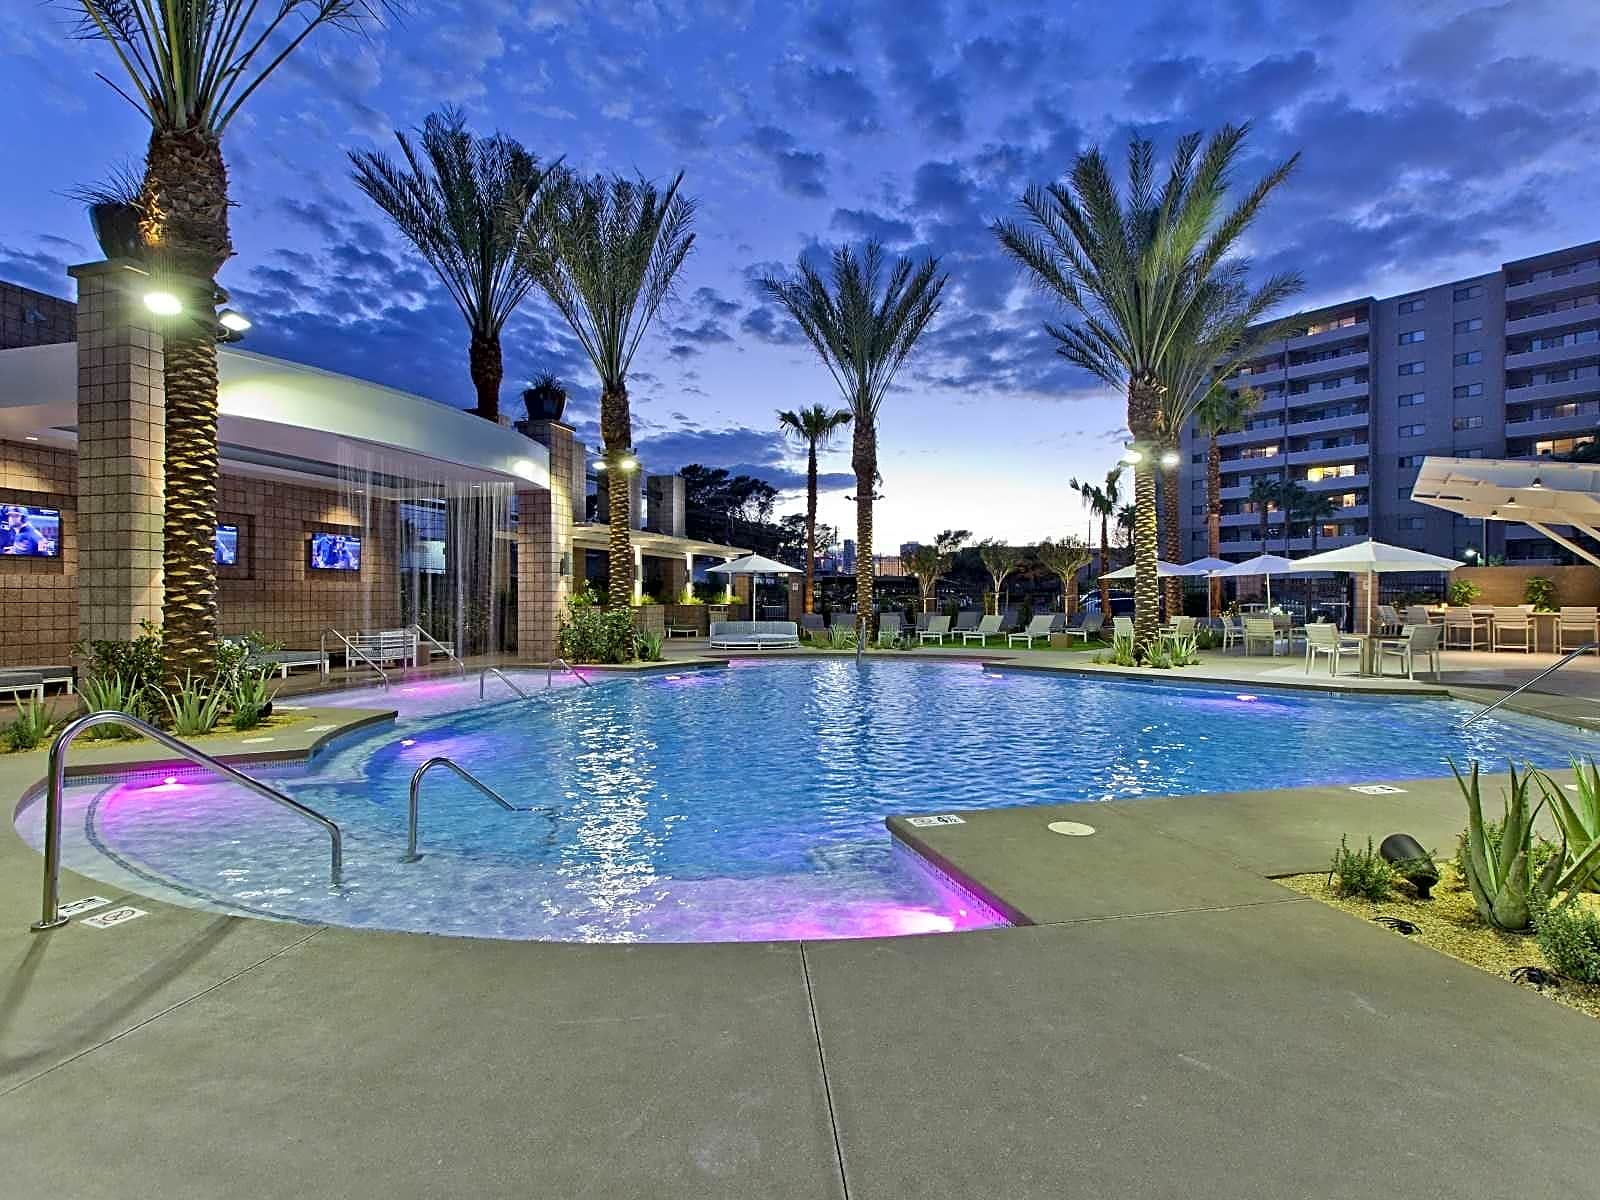 Apartments Near UNLV Vegas Towers for University of Nevada-Las Vegas Students in Las Vegas, NV